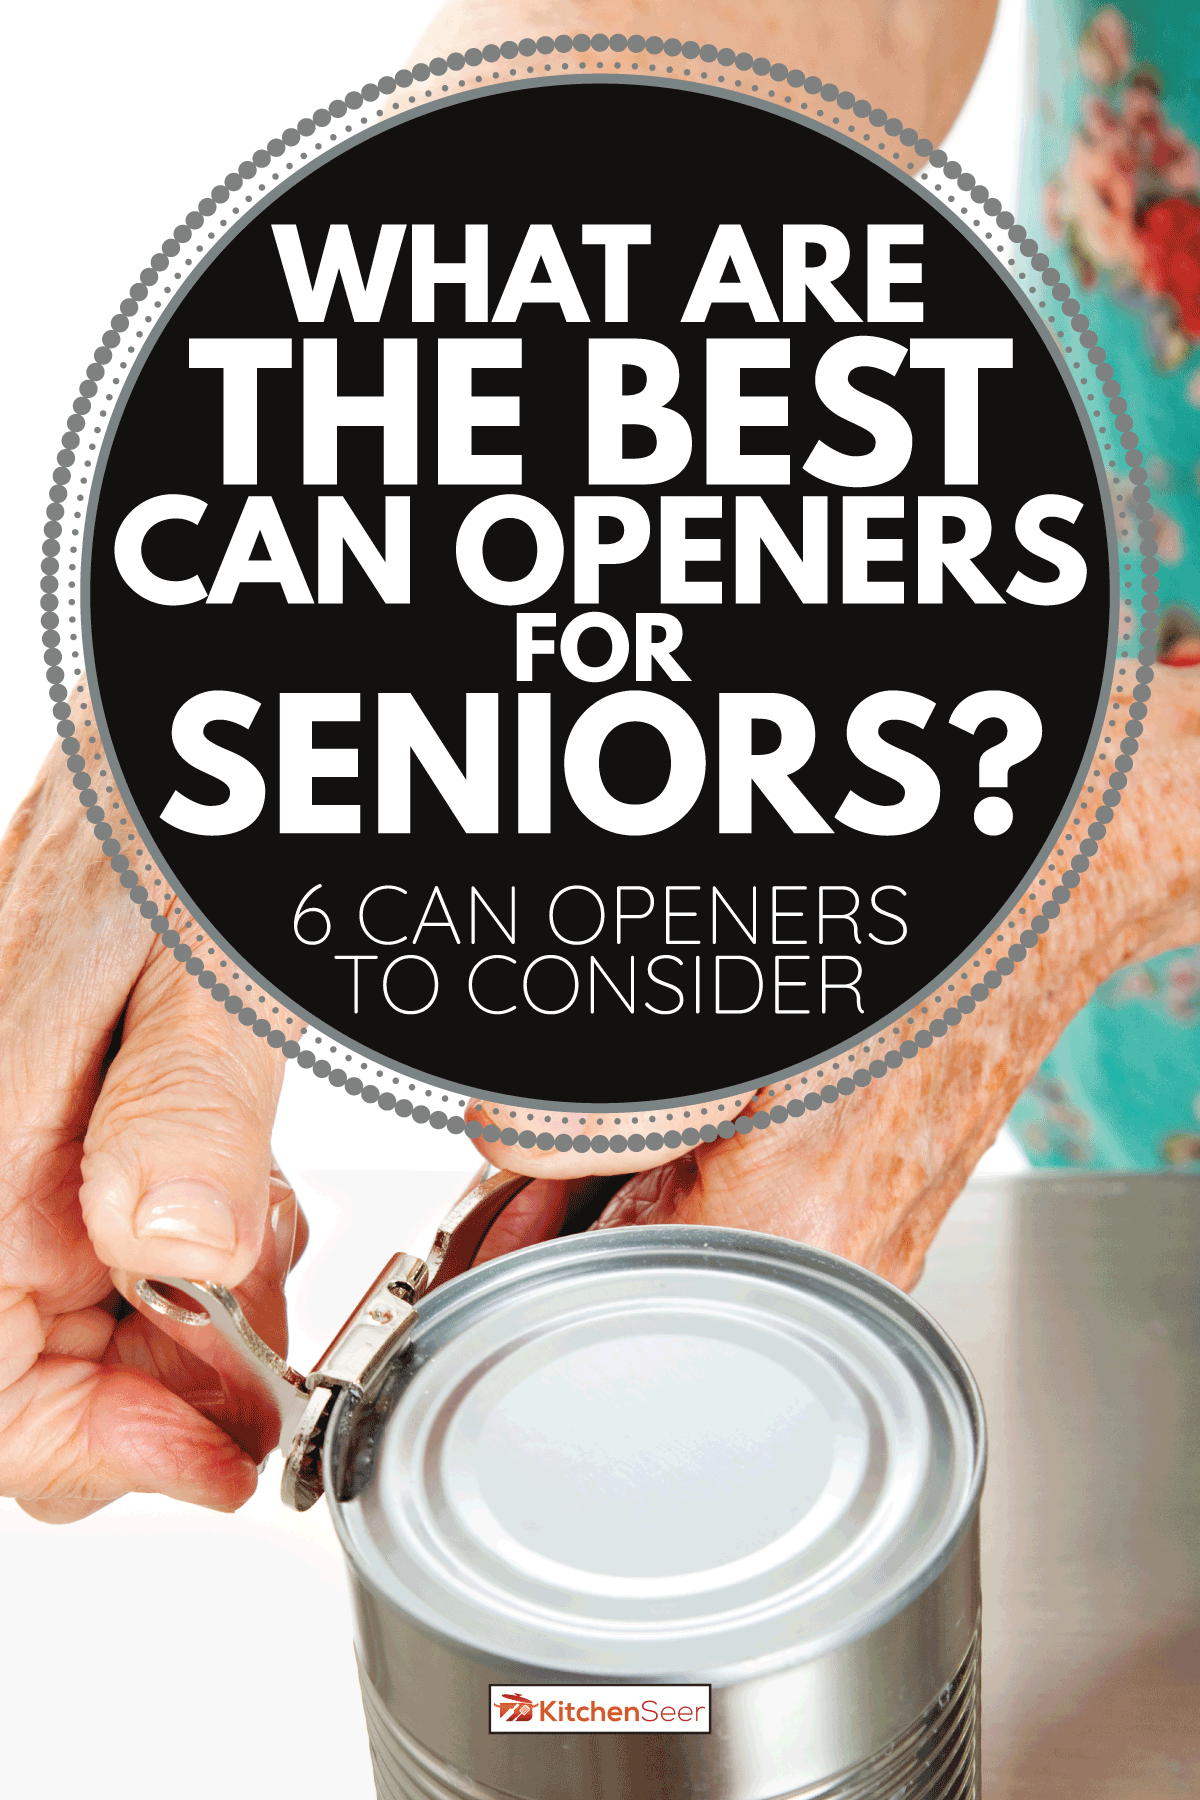 old woman Coping With Arthritis opening a can using a can opener. What Are The Best Can Openers For Seniors [6 Can Openers To Consider]